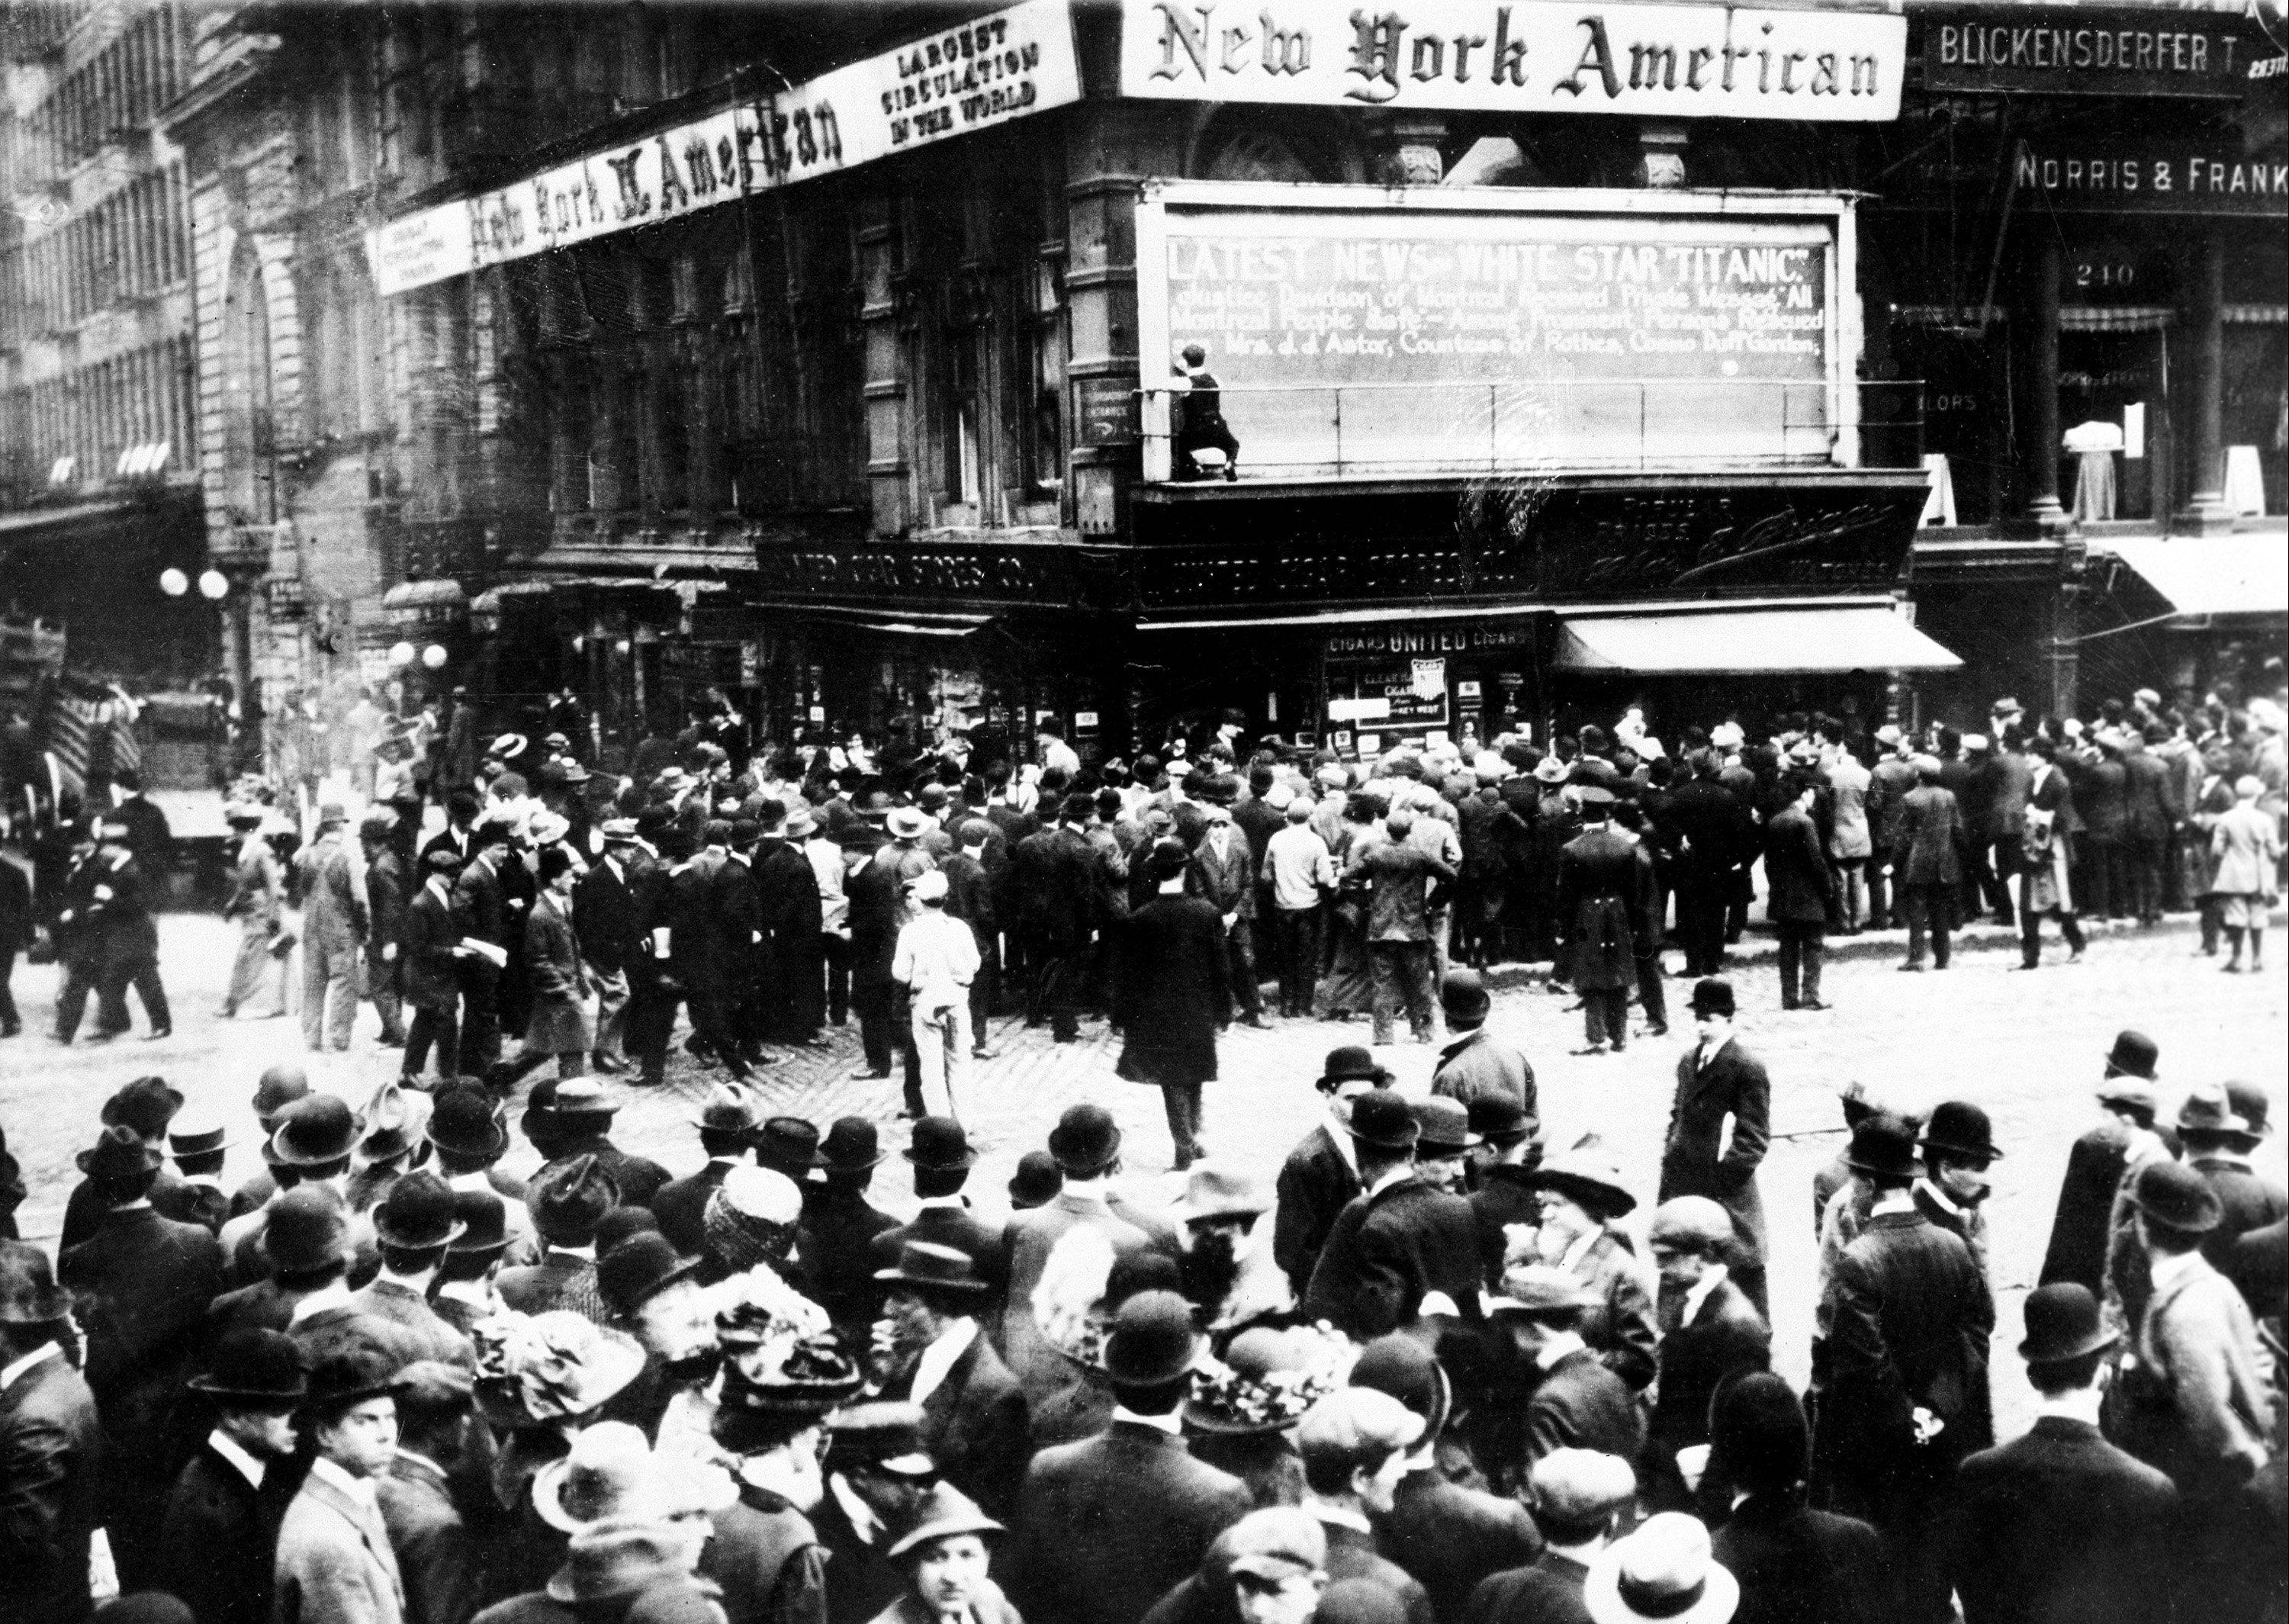 Crowds gather in April 1912 around the bulletin board of the New York American, where the names of people rescued from the sinking Titanic are on display just days after its sinking.